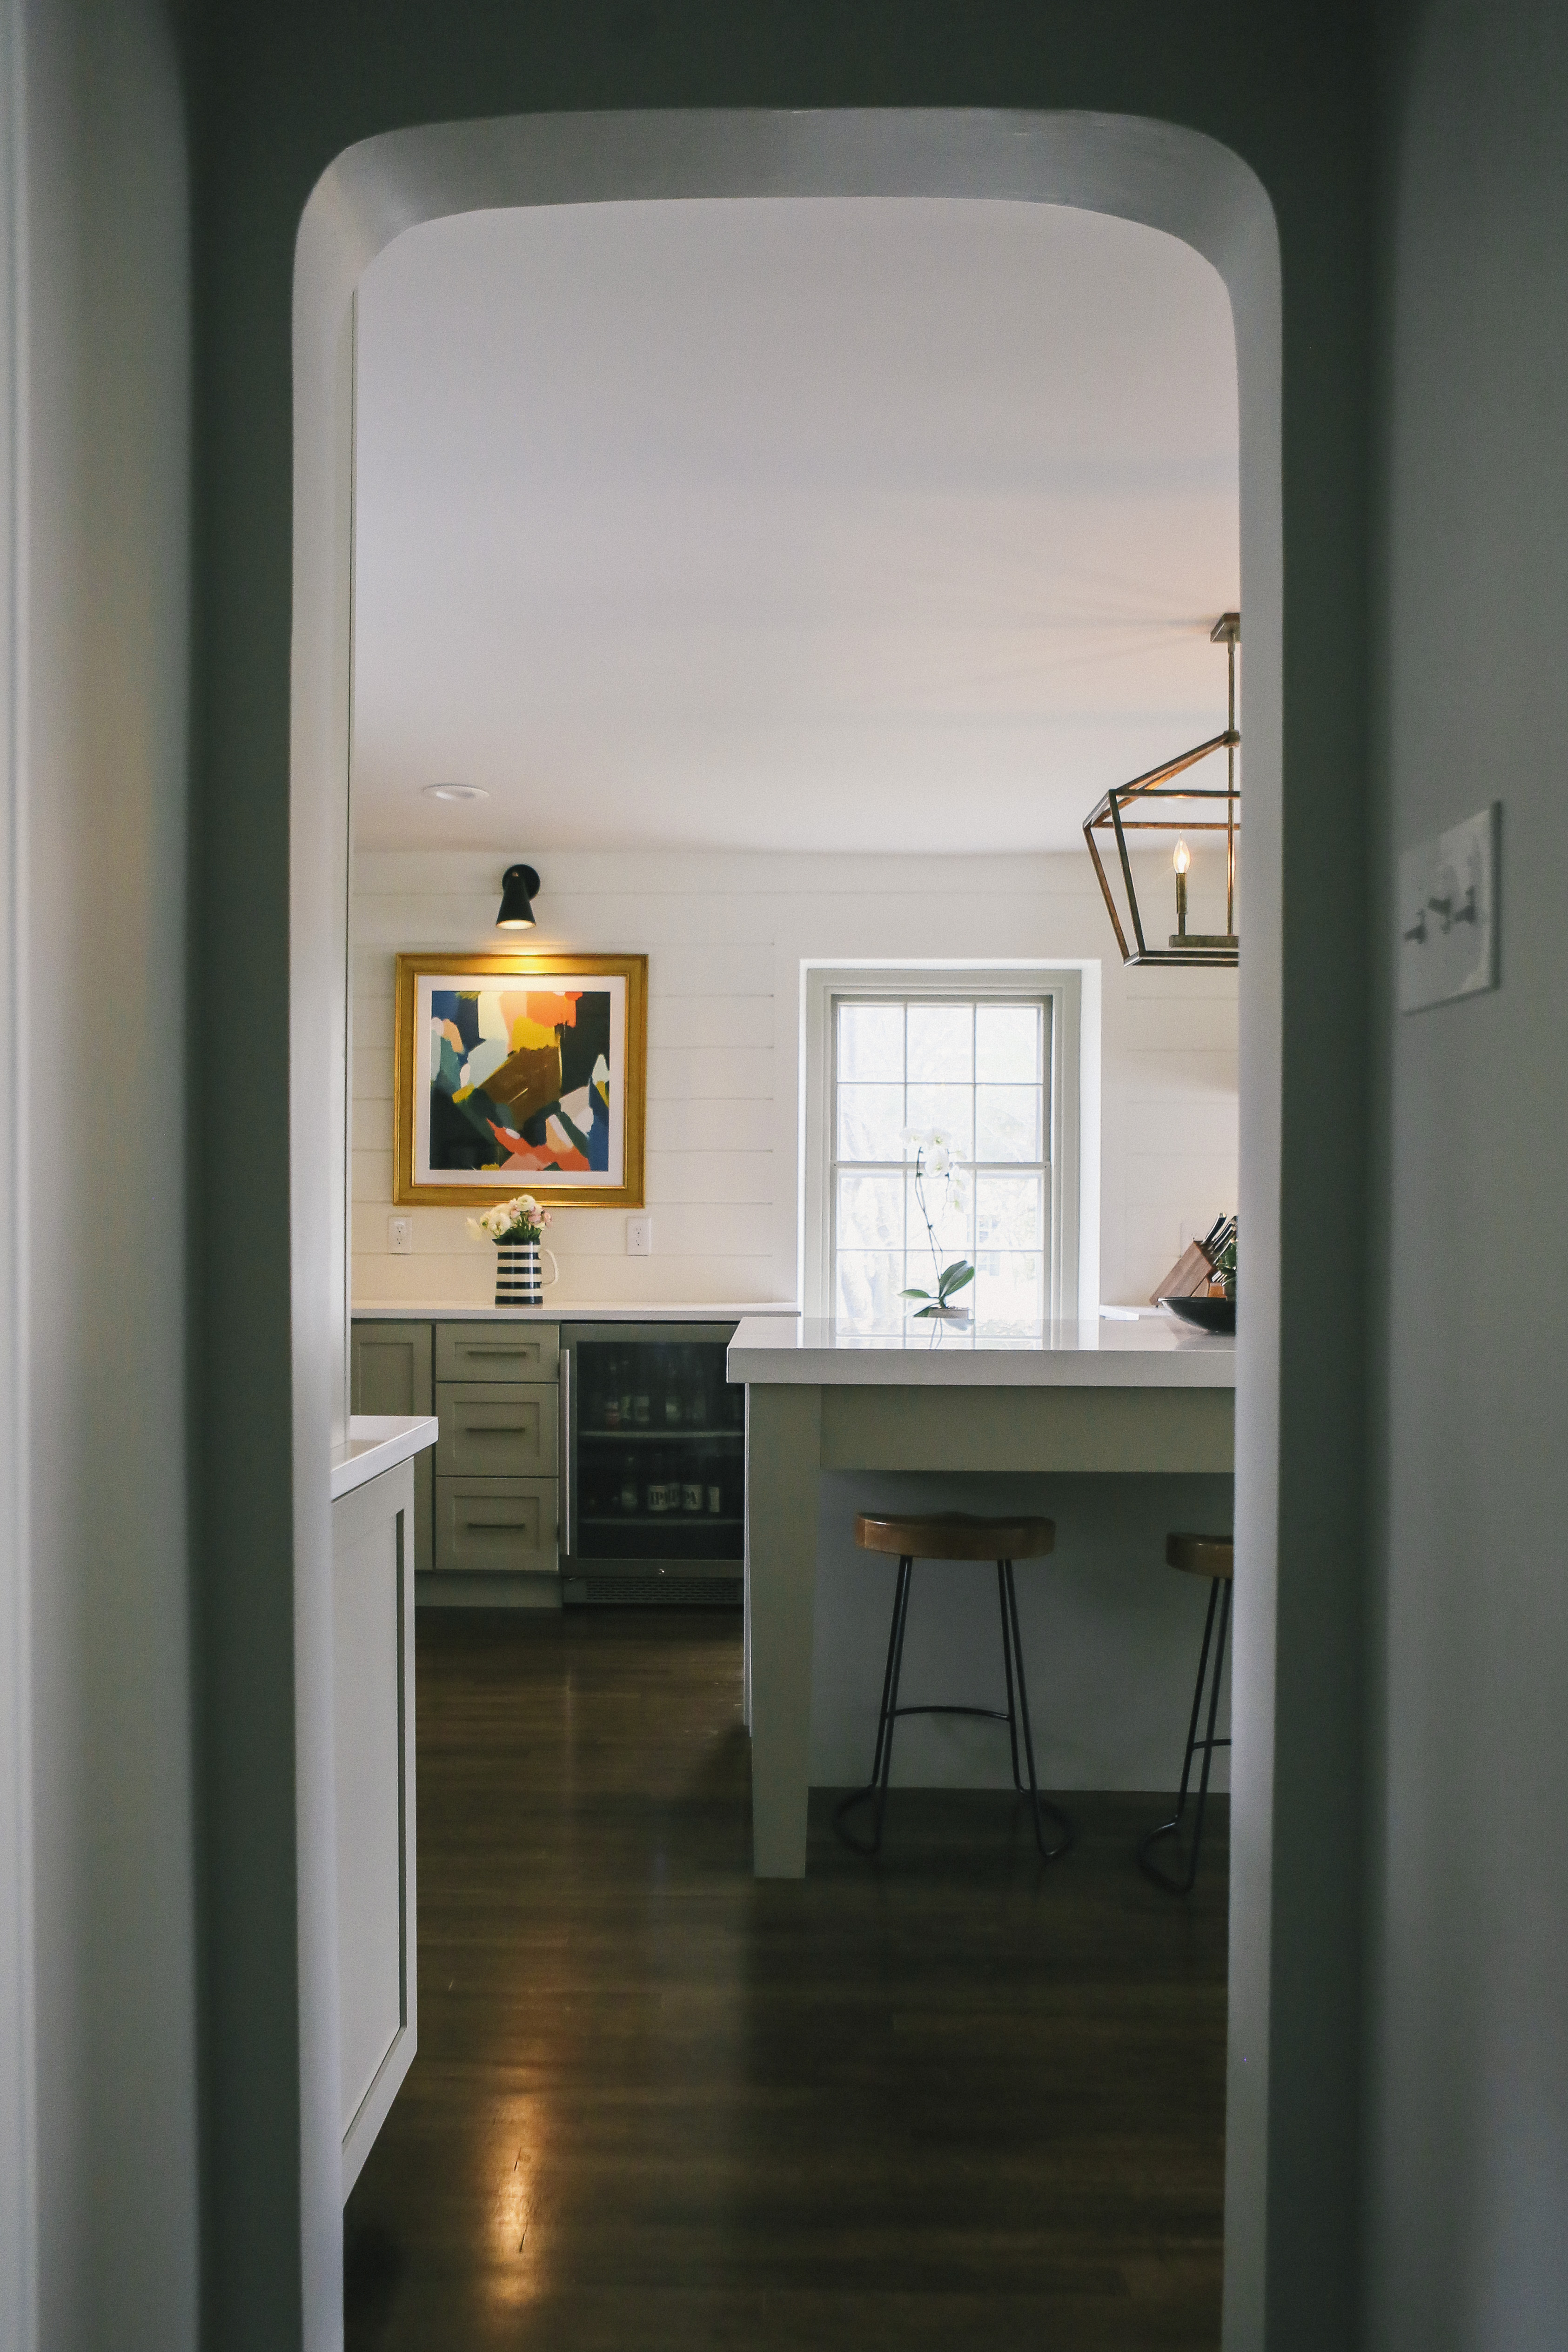 design my kitchen layout elements that ive decided want to incorporate once design my new kitchen hear jennys thoughts on the overall of her twin sisters modern farmhouse kitchen in ardmore main line haven